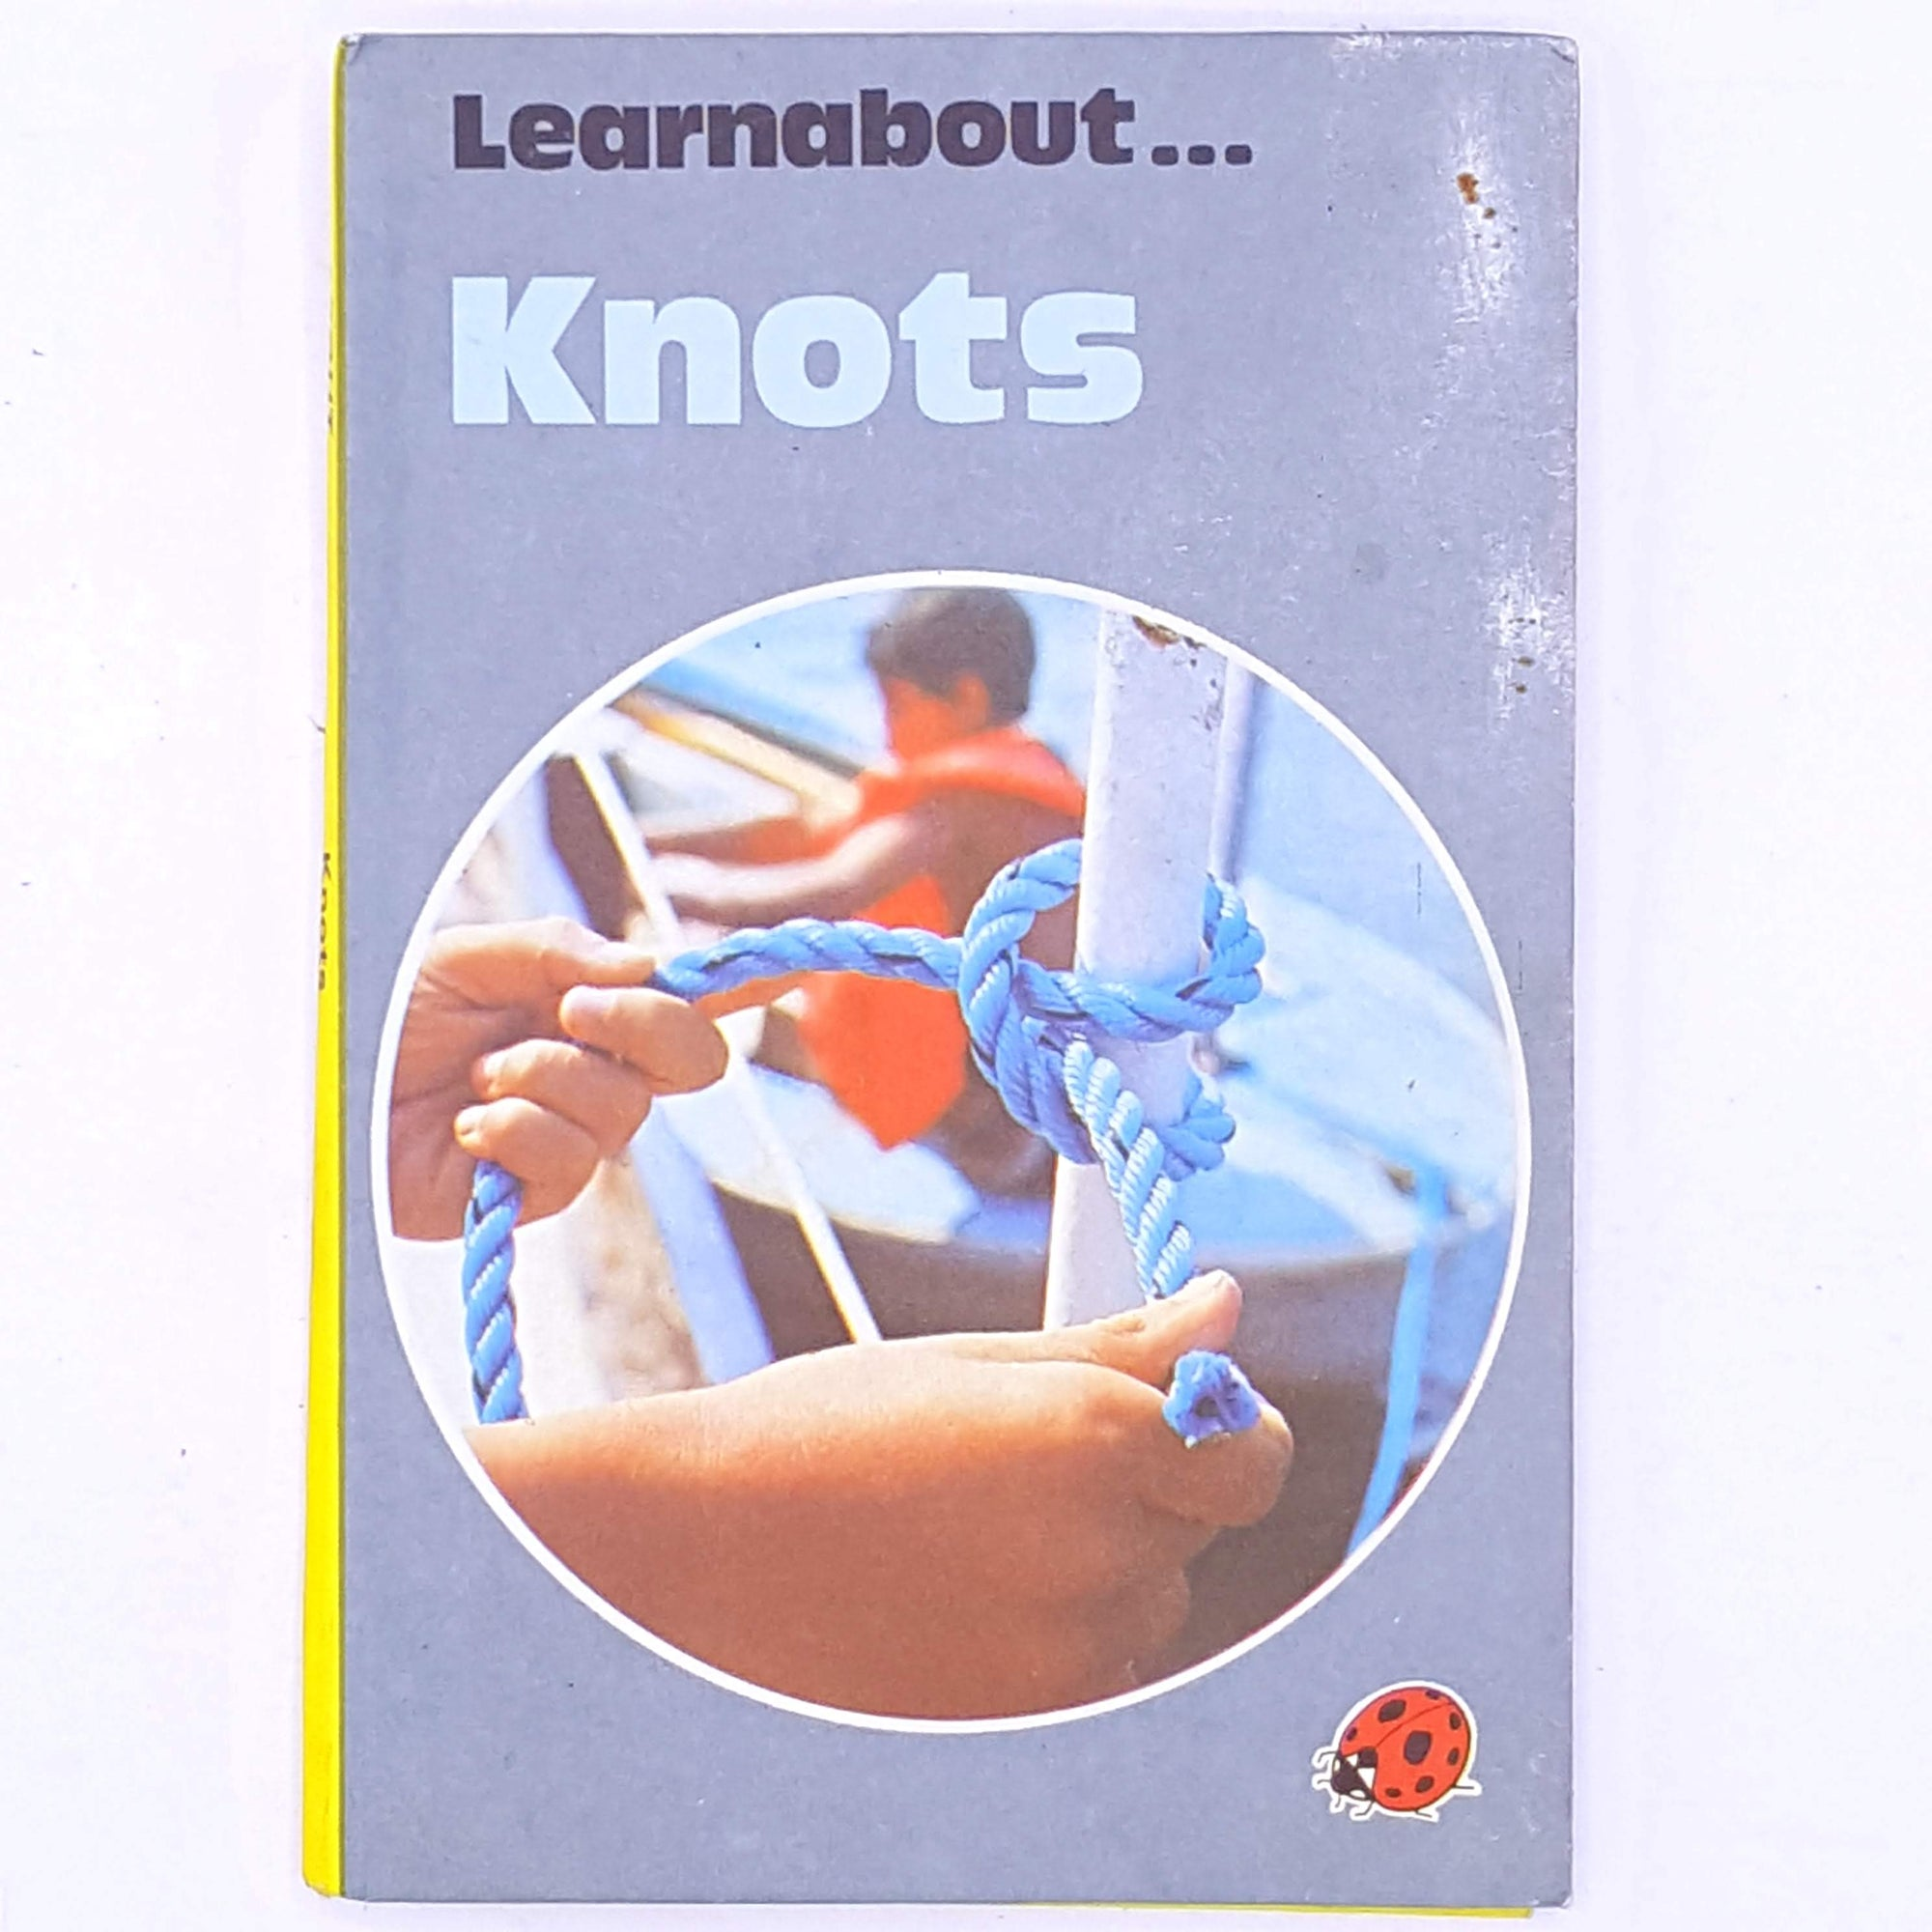 thrift-vintage-knots-learnabout-for-kids-childrens-old-books-ladybird-vintage-ladybird- antique-classic-patterned-country-house-library-decorative-